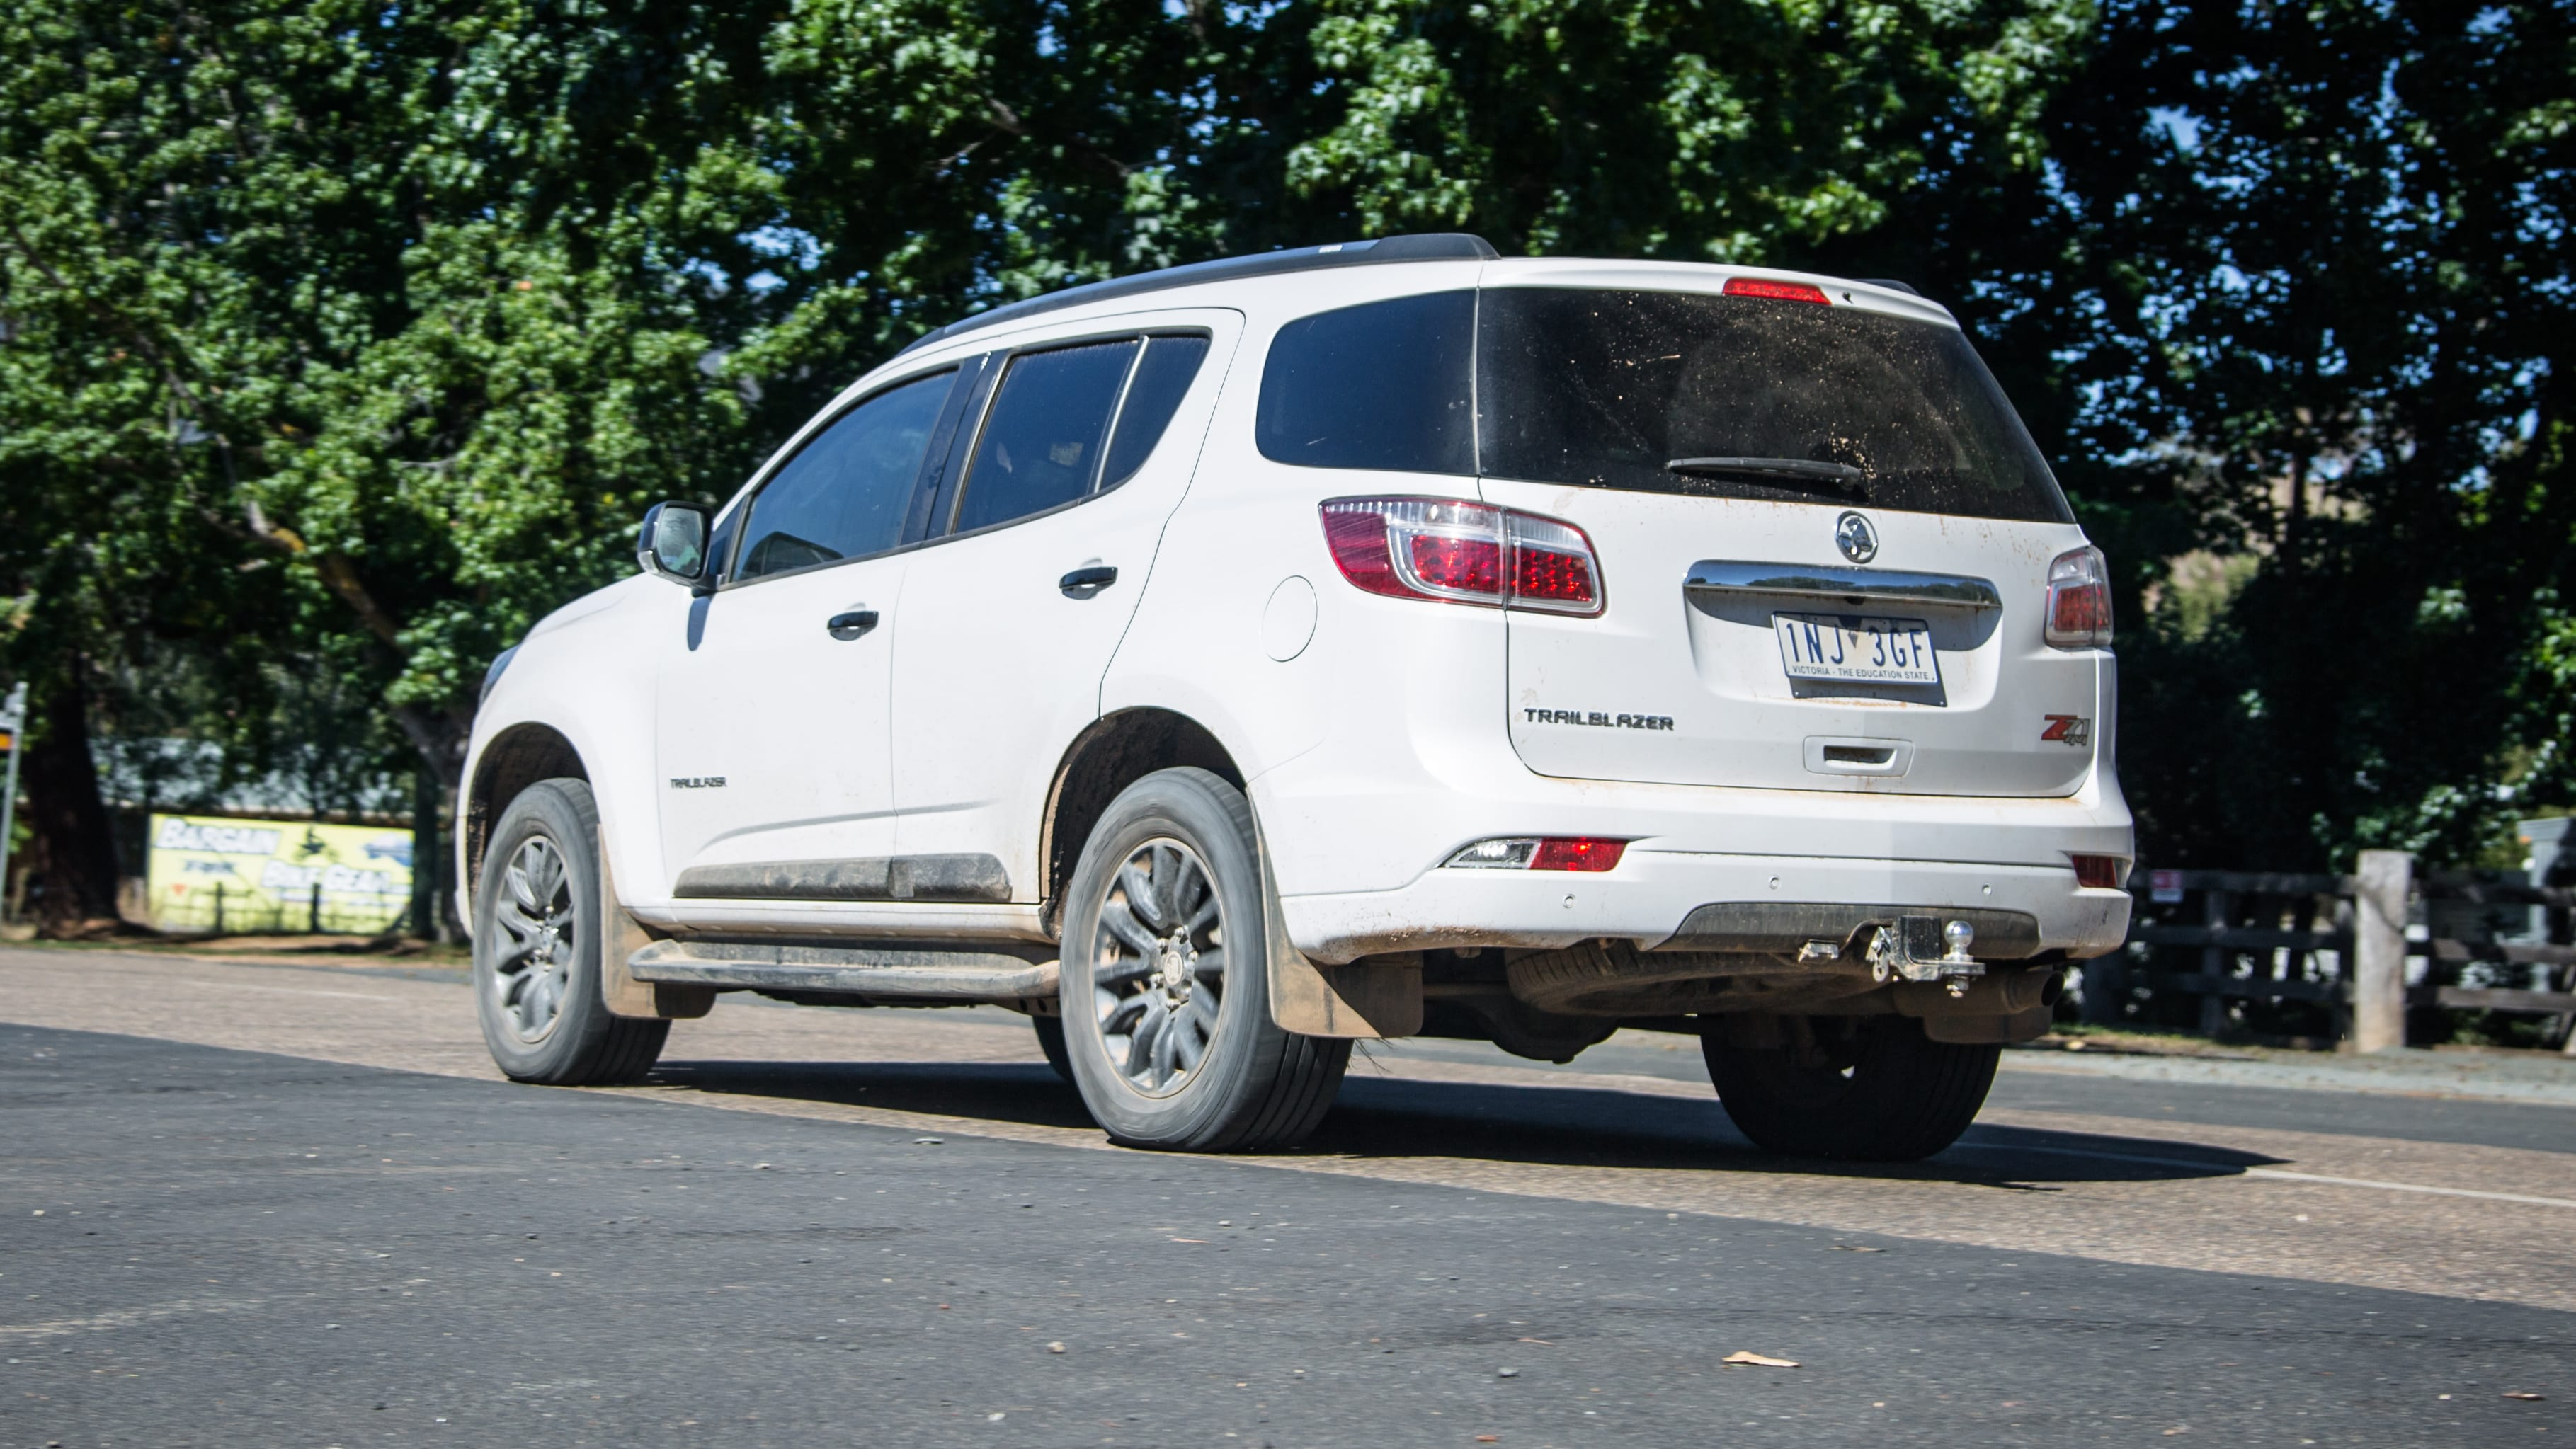 2019 Holden Trailblazer Z71 review: Off-road | CarAdvice